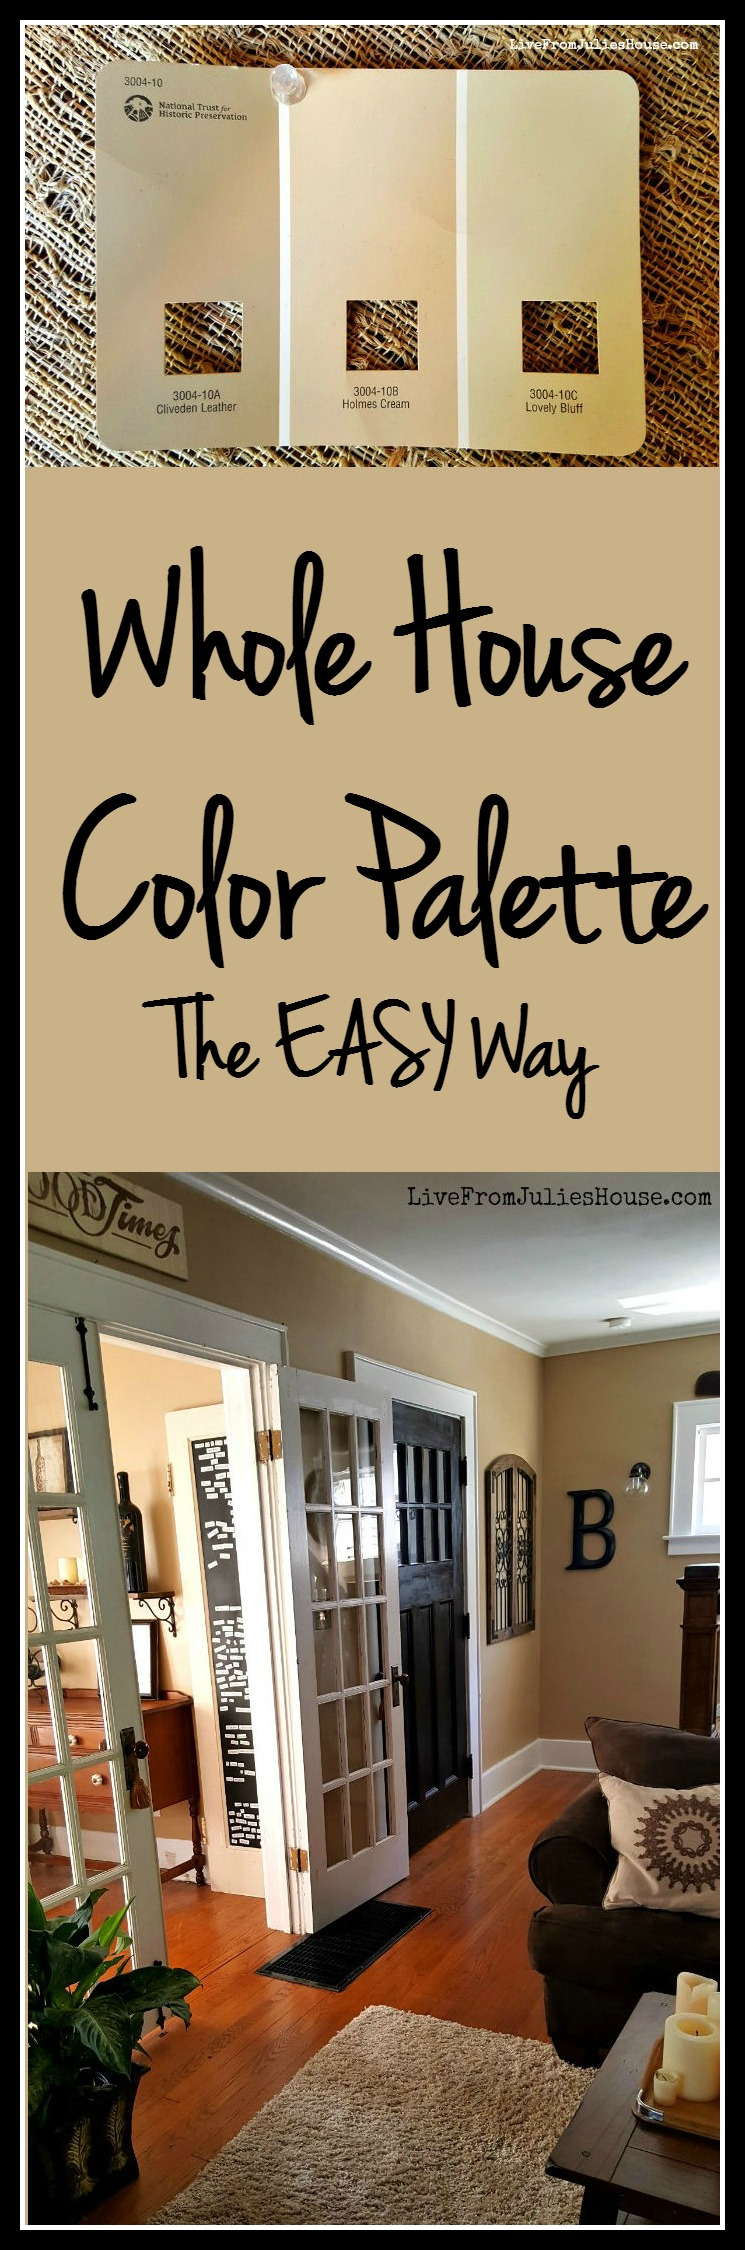 Whole House Color Palette - Not sure how to create a whole house color palette? Let the paint company do the work for you!